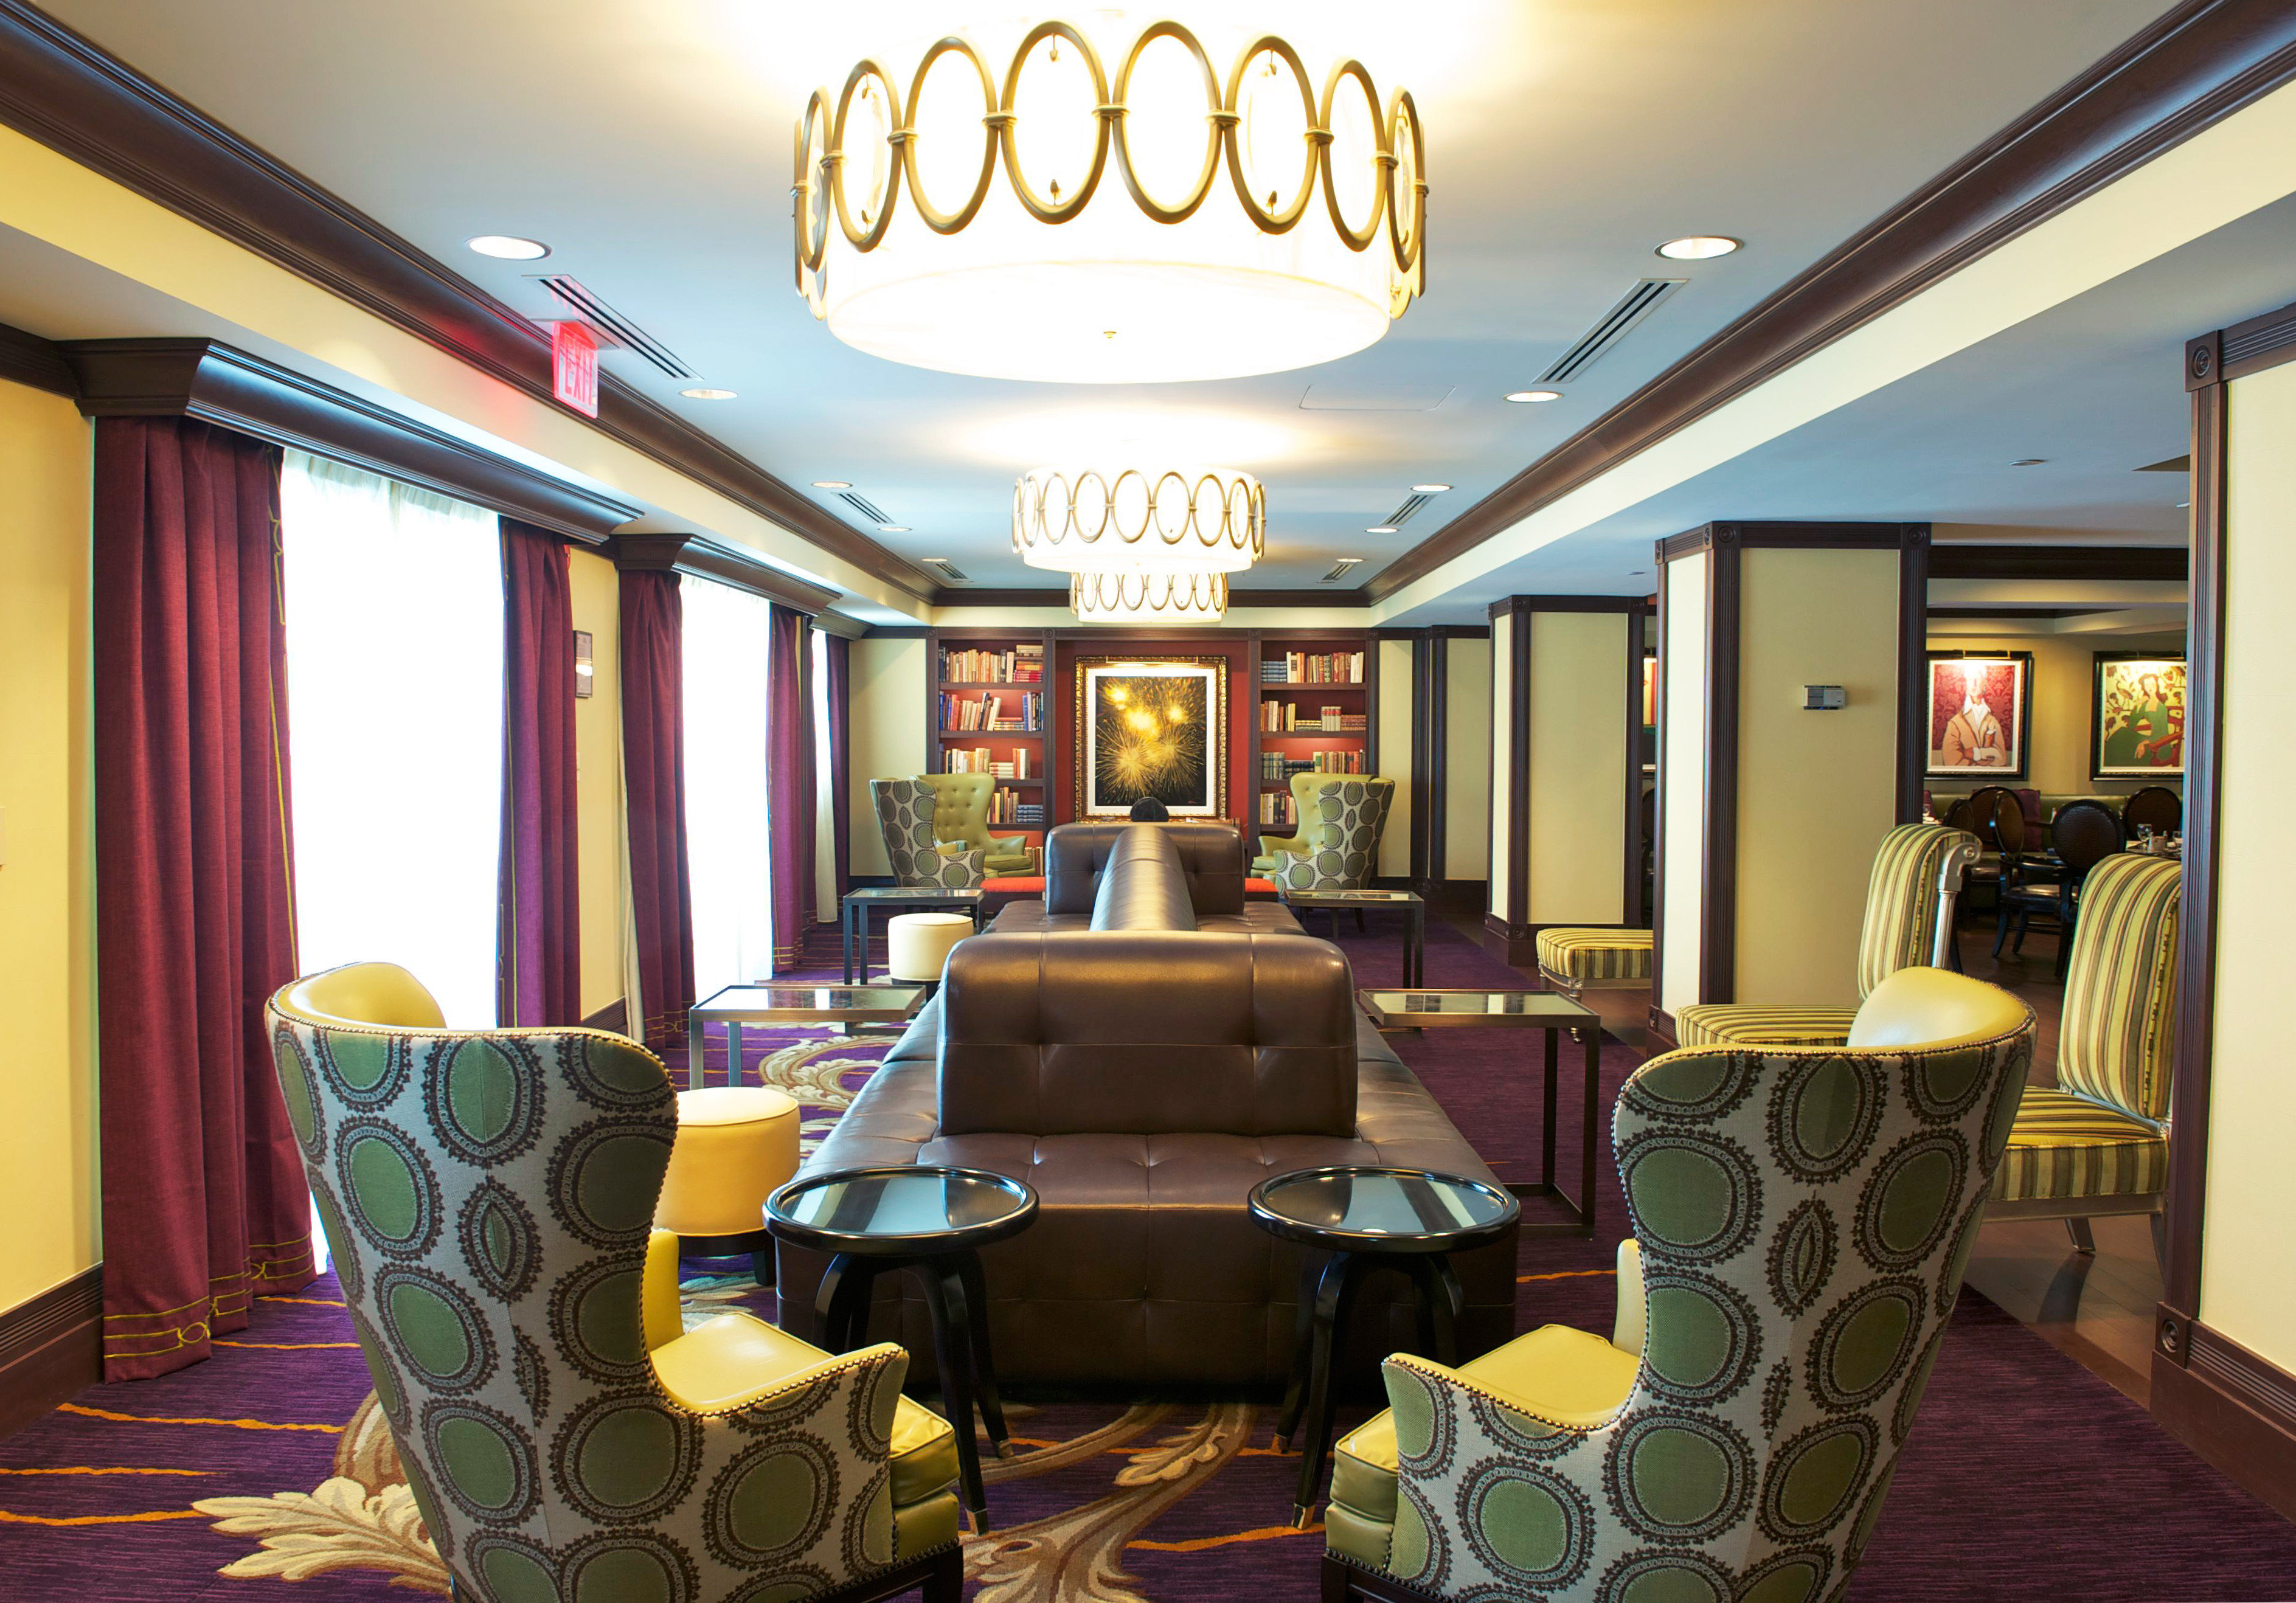 Boutique Budget City Classic Lobby Lounge property home living room Resort restaurant mansion Suite